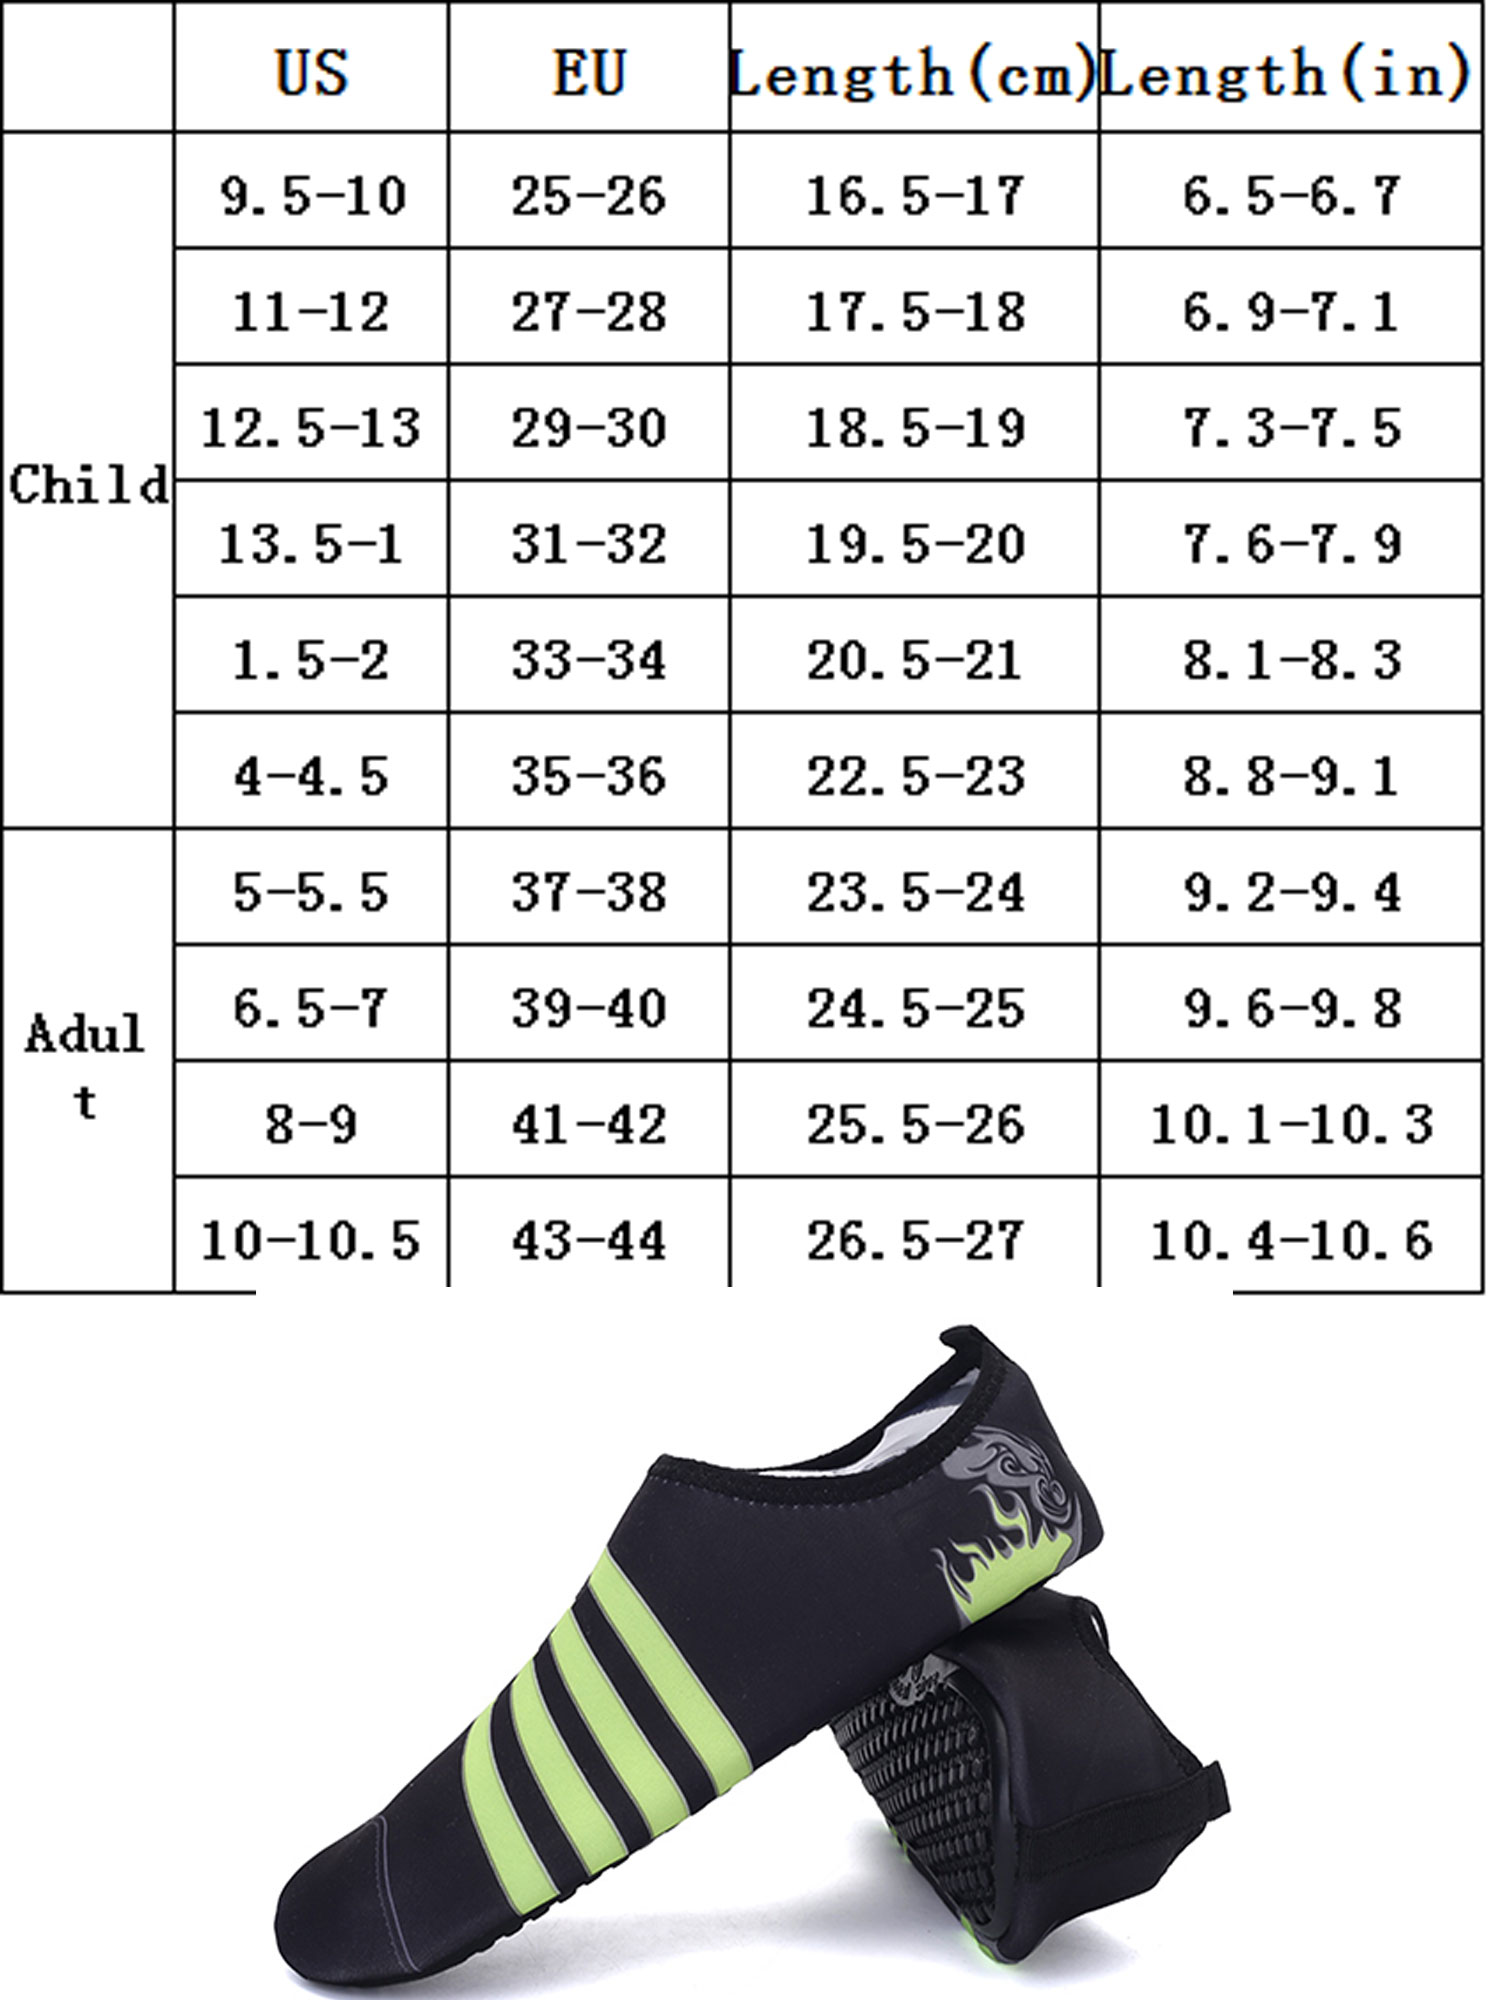 e126f18acc Water Shoes Barefoot Beach Pool Shoes Quick-Dry Aqua Yoga Socks for Surf Swim  Water Sport for Men Women - Walmart.com